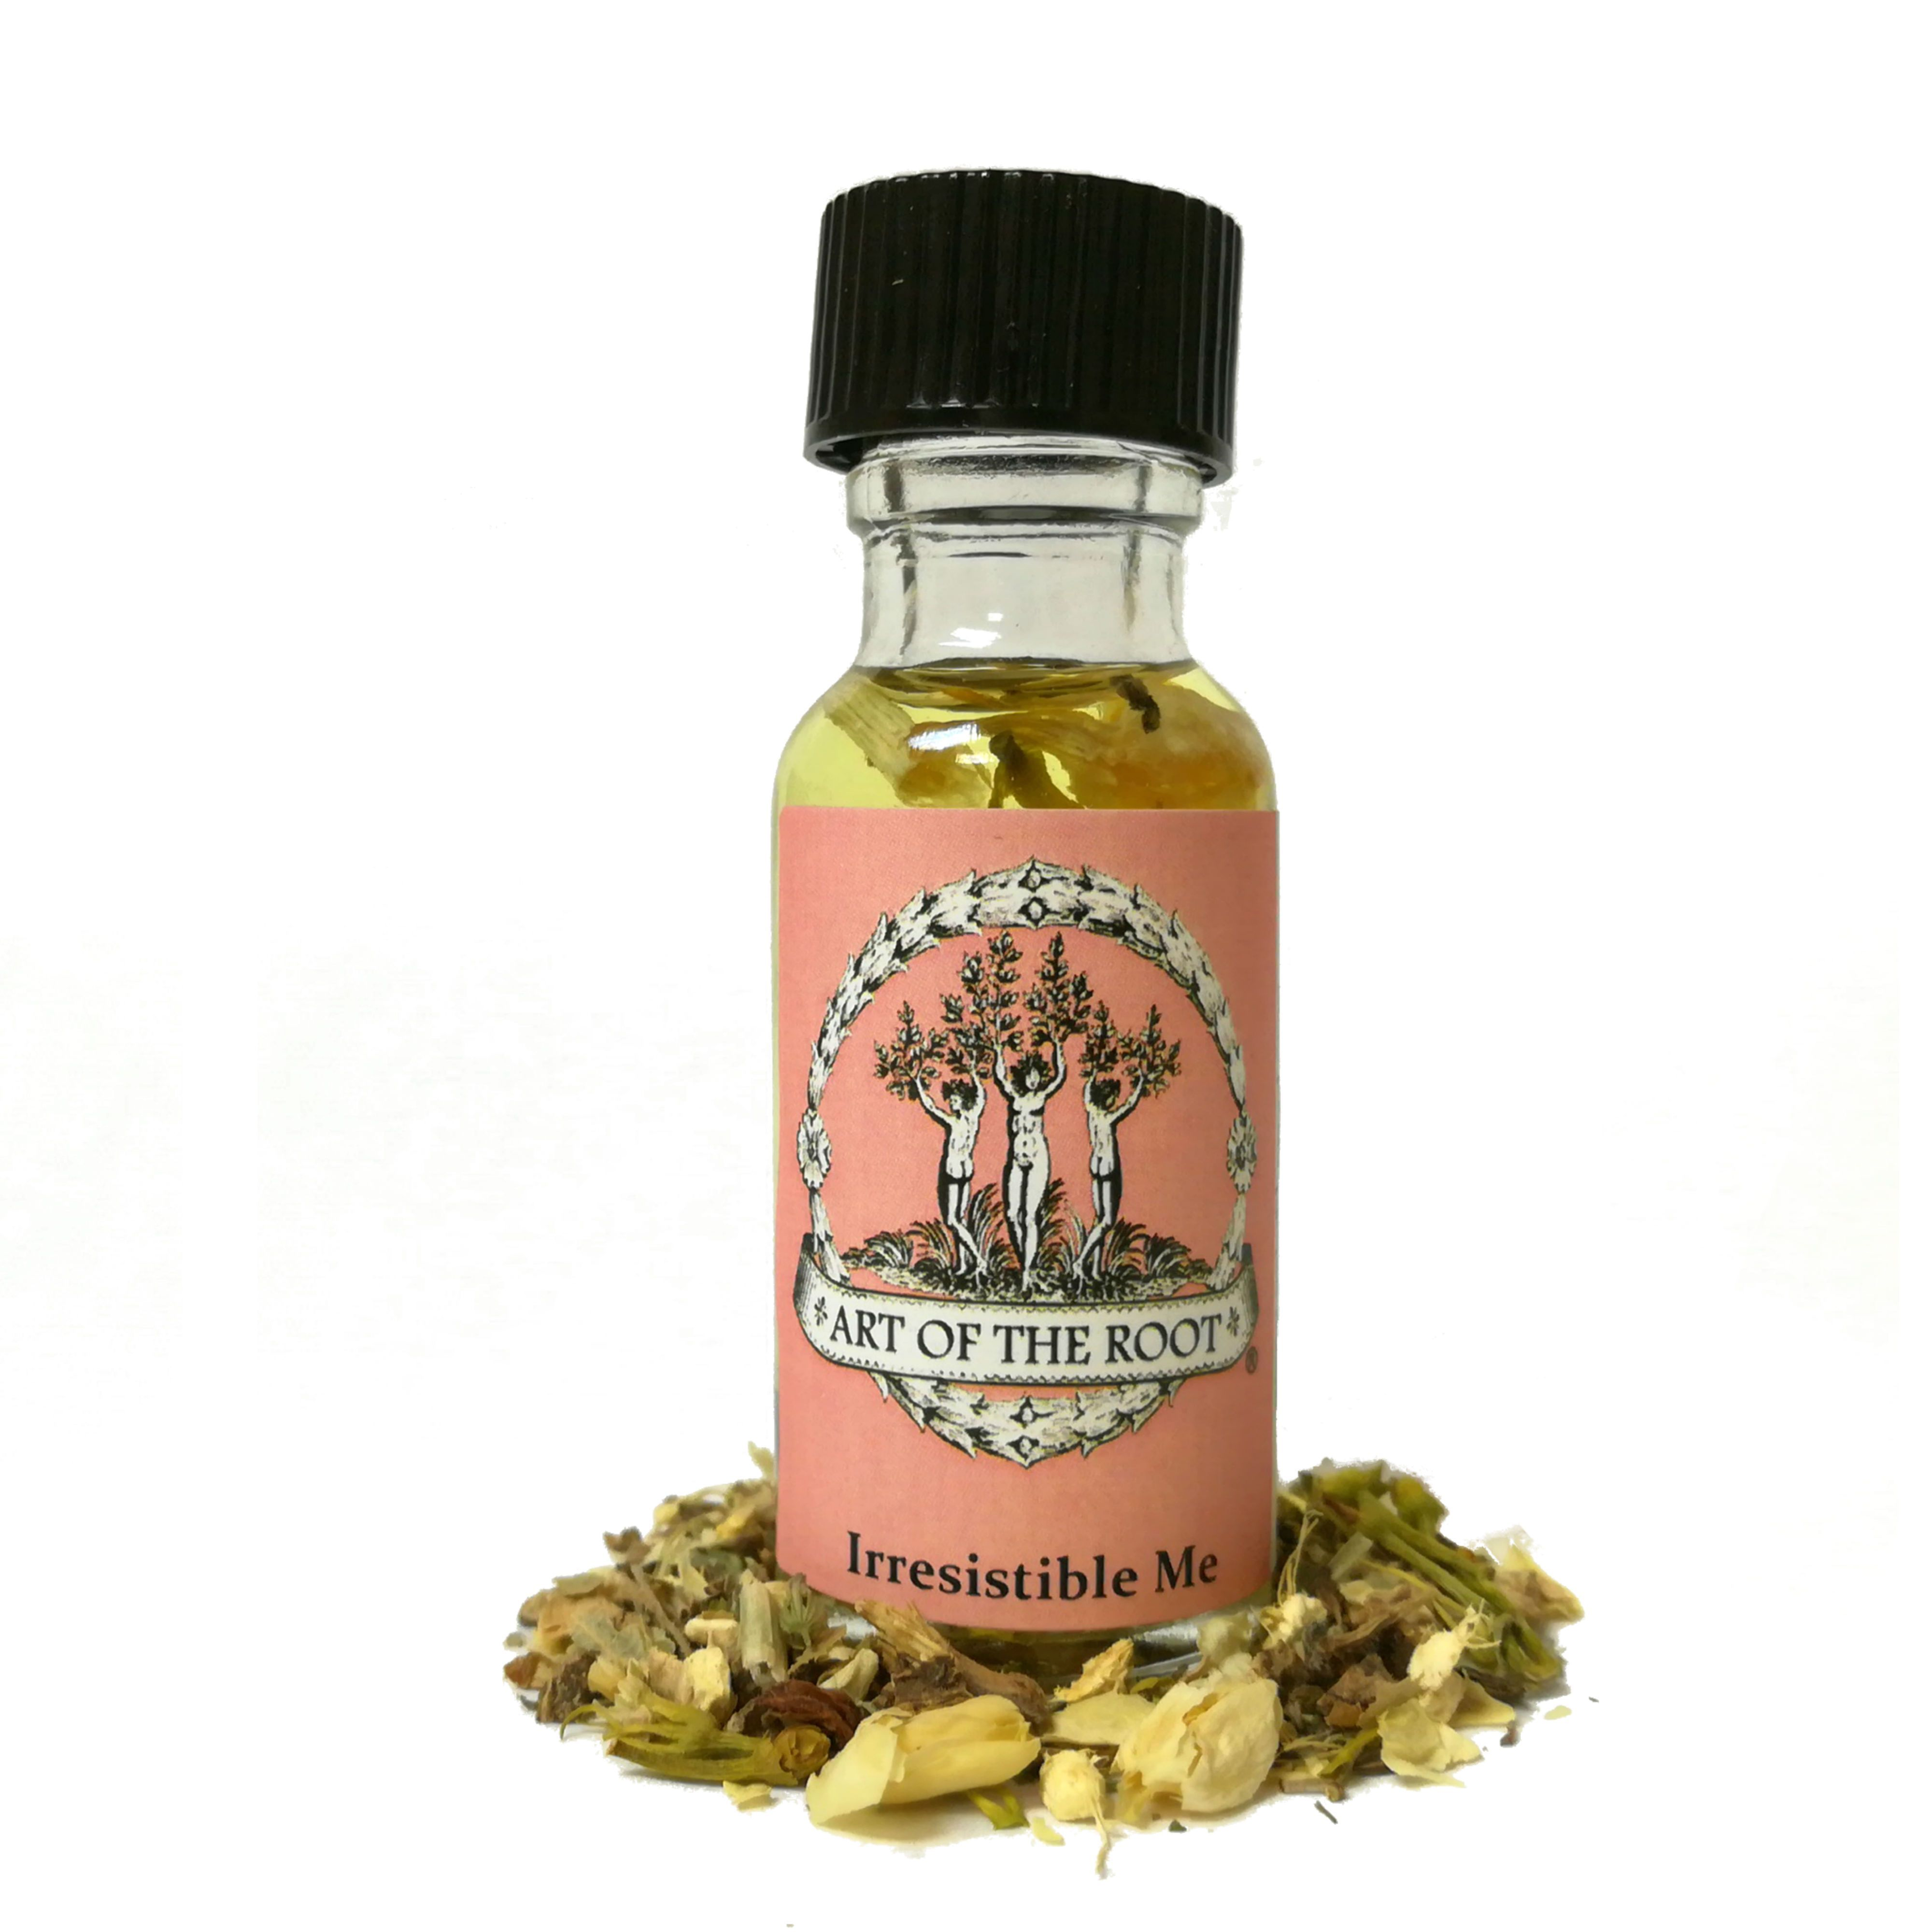 Irresistible Me Oil for Love, Enchantment, Desire, Passion